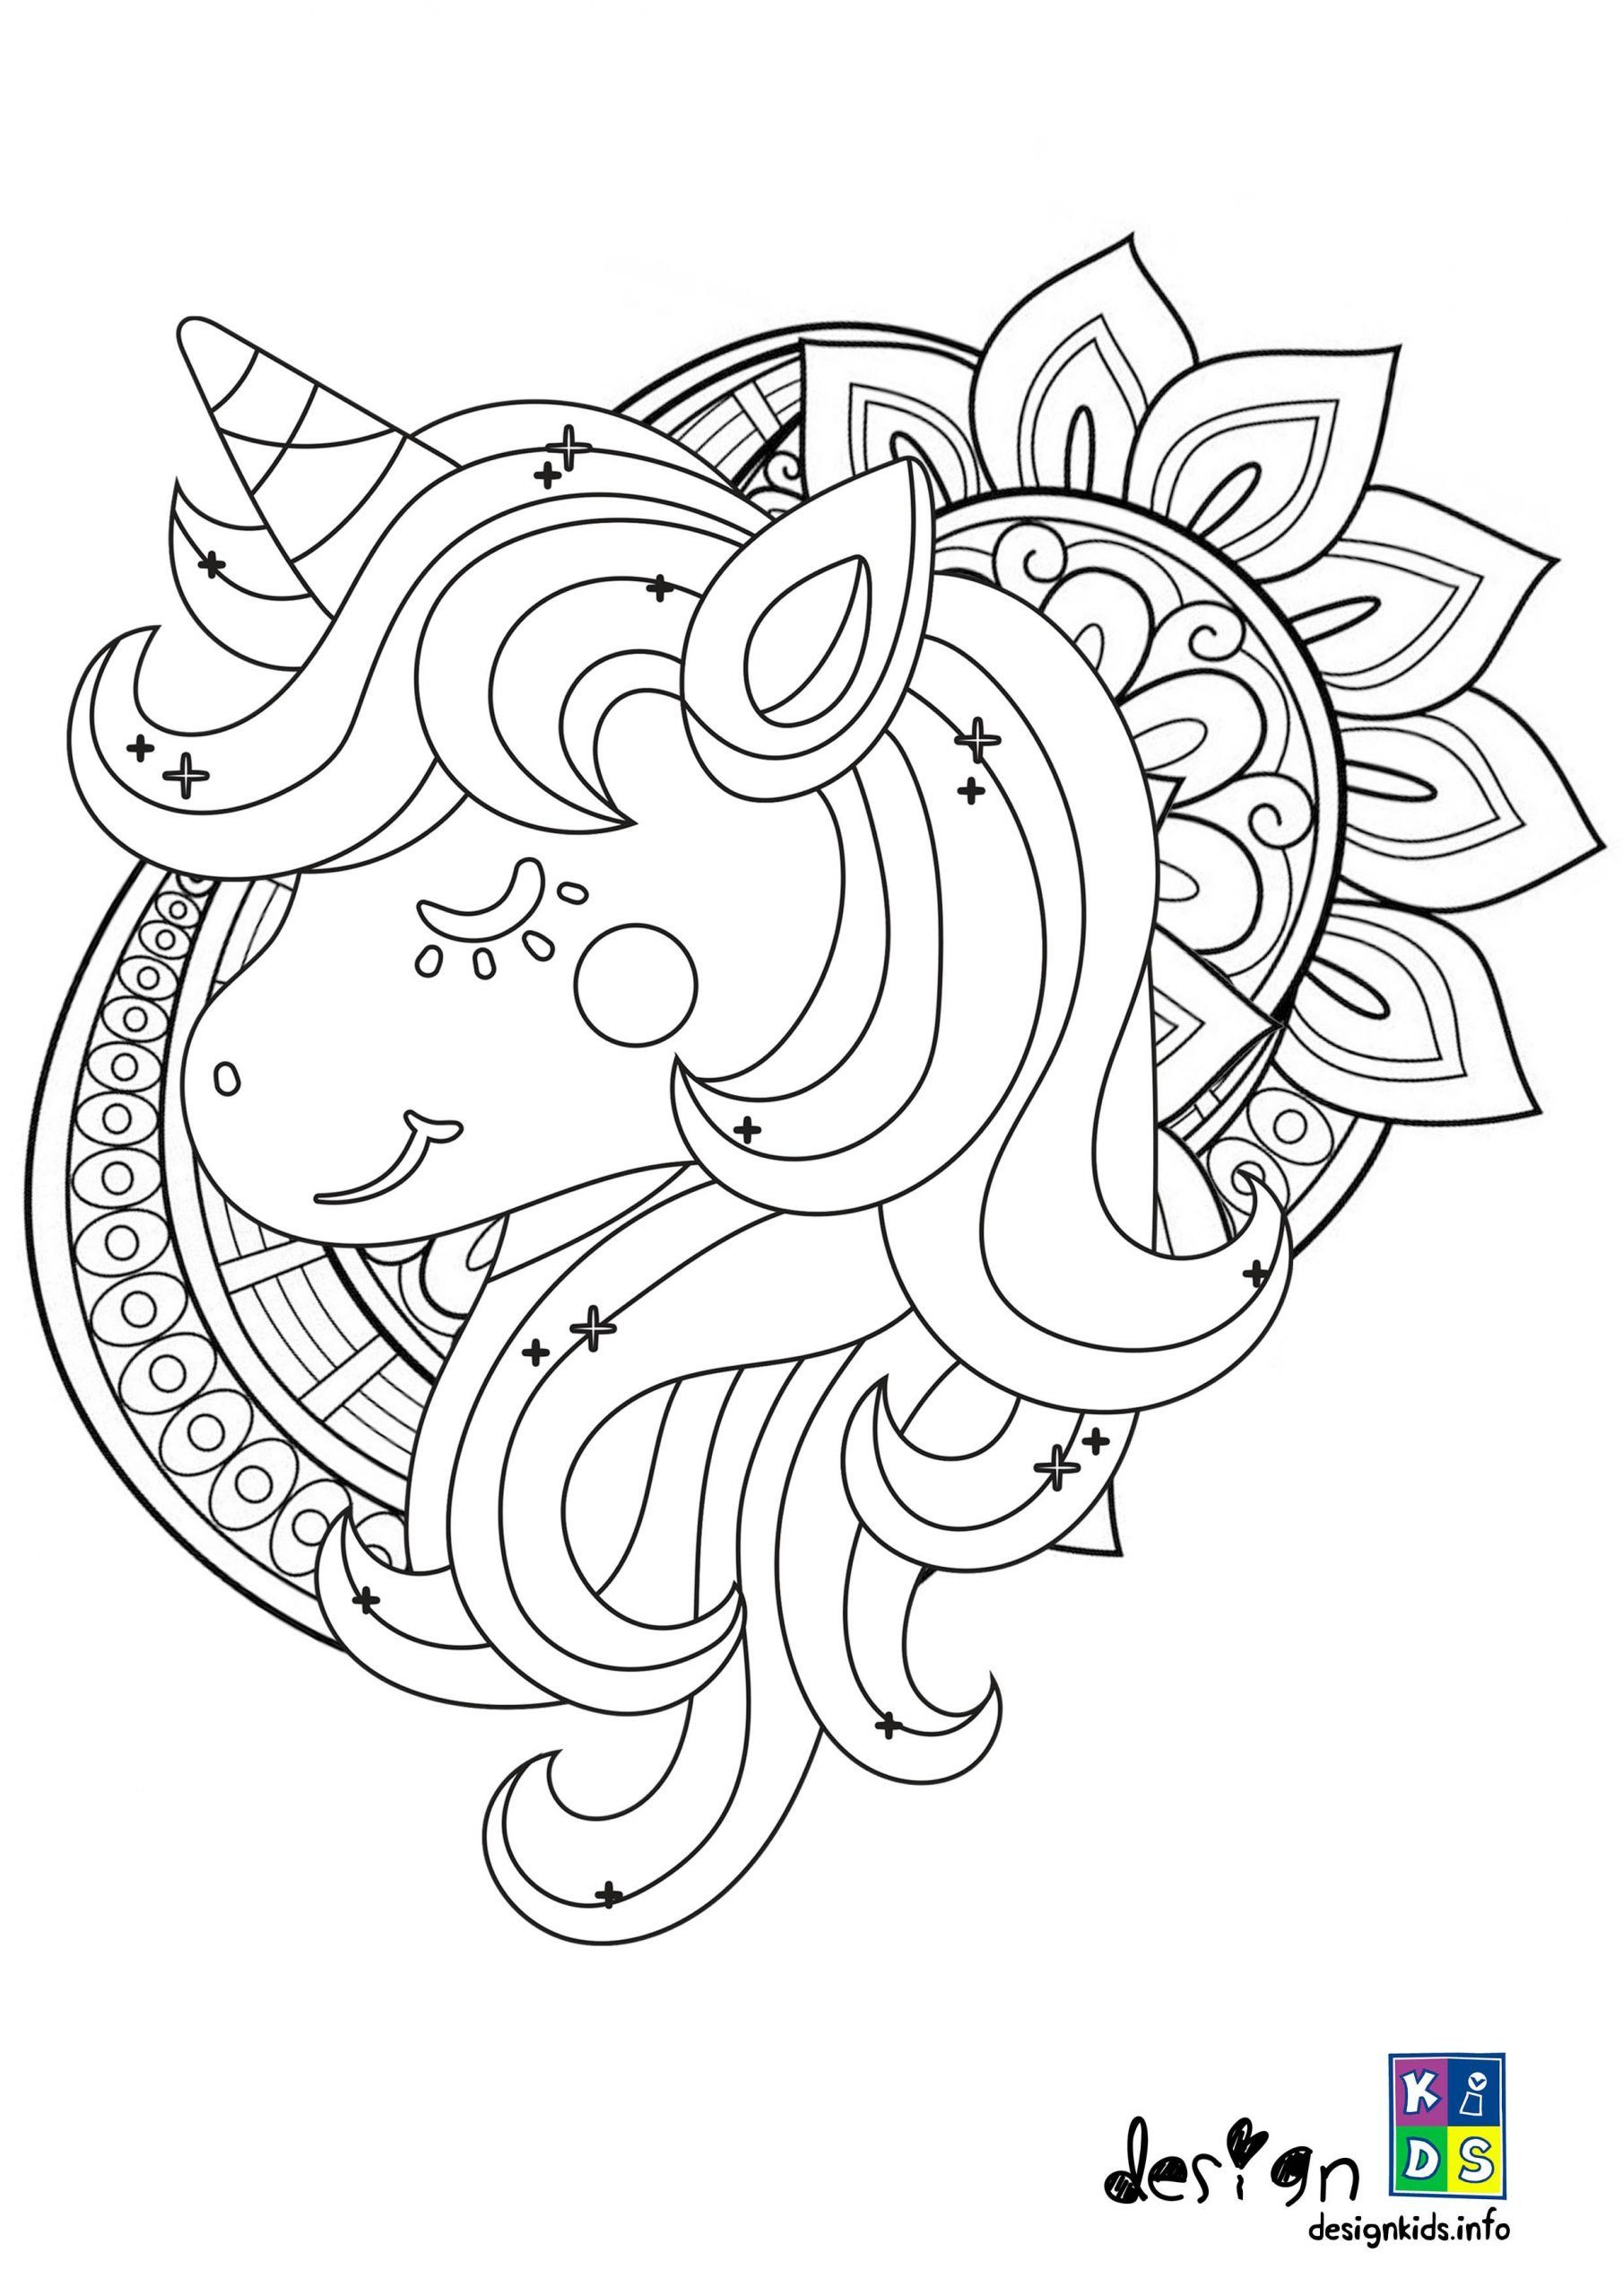 Pretty Mandala Coloring Pages Cute Unicorn Mandala Coloring Page Italksfo Italksfo Mandala Coloring Pages Baseball Coloring Pages Unicorn Coloring Pages